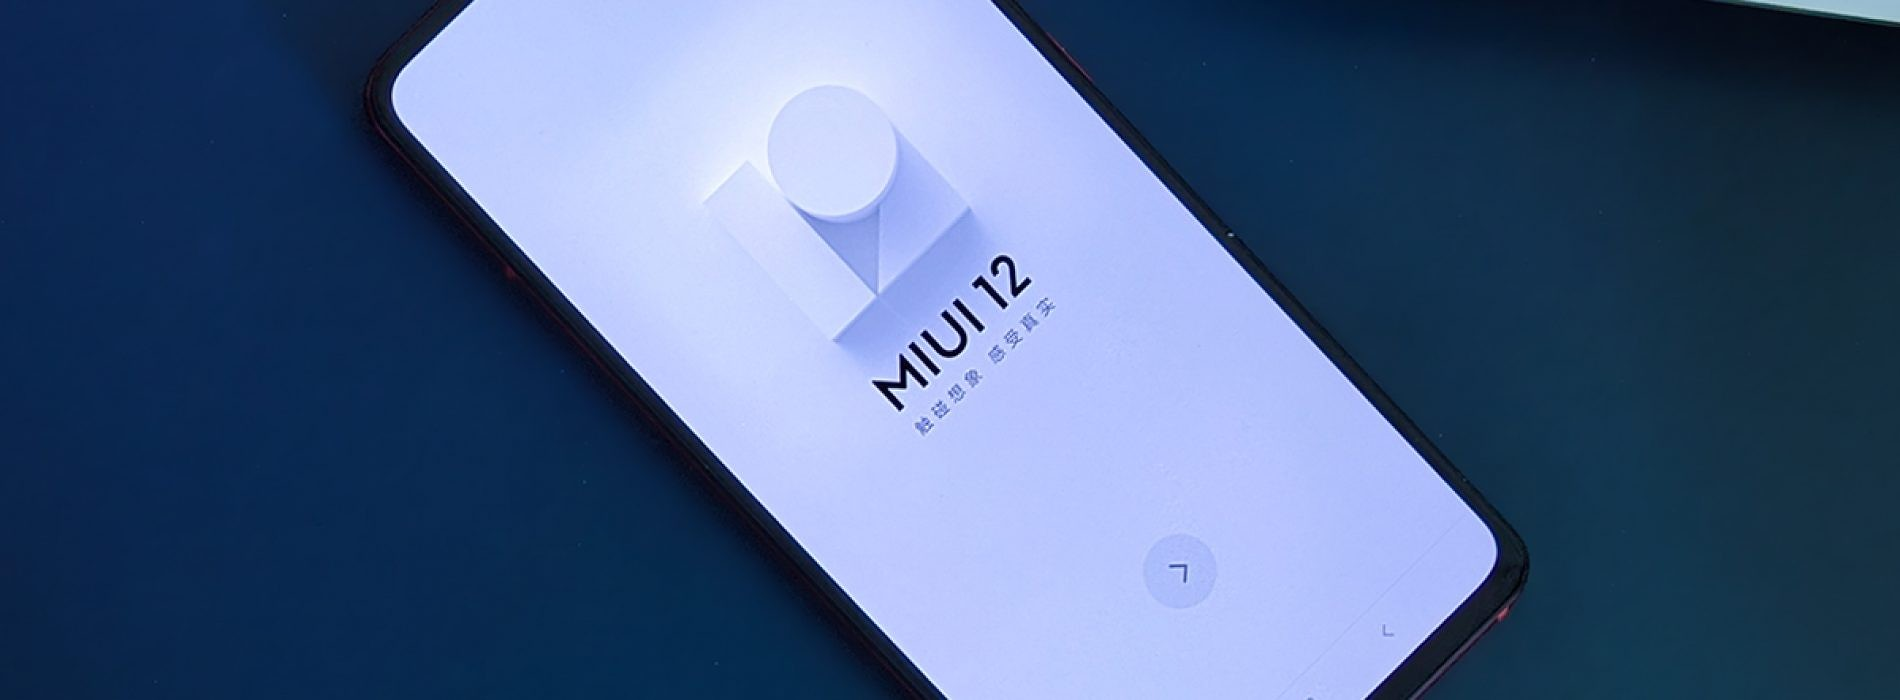 Download: MIUI 12 stable update rolling out to several Xiaomi, Redmi and POCO devices